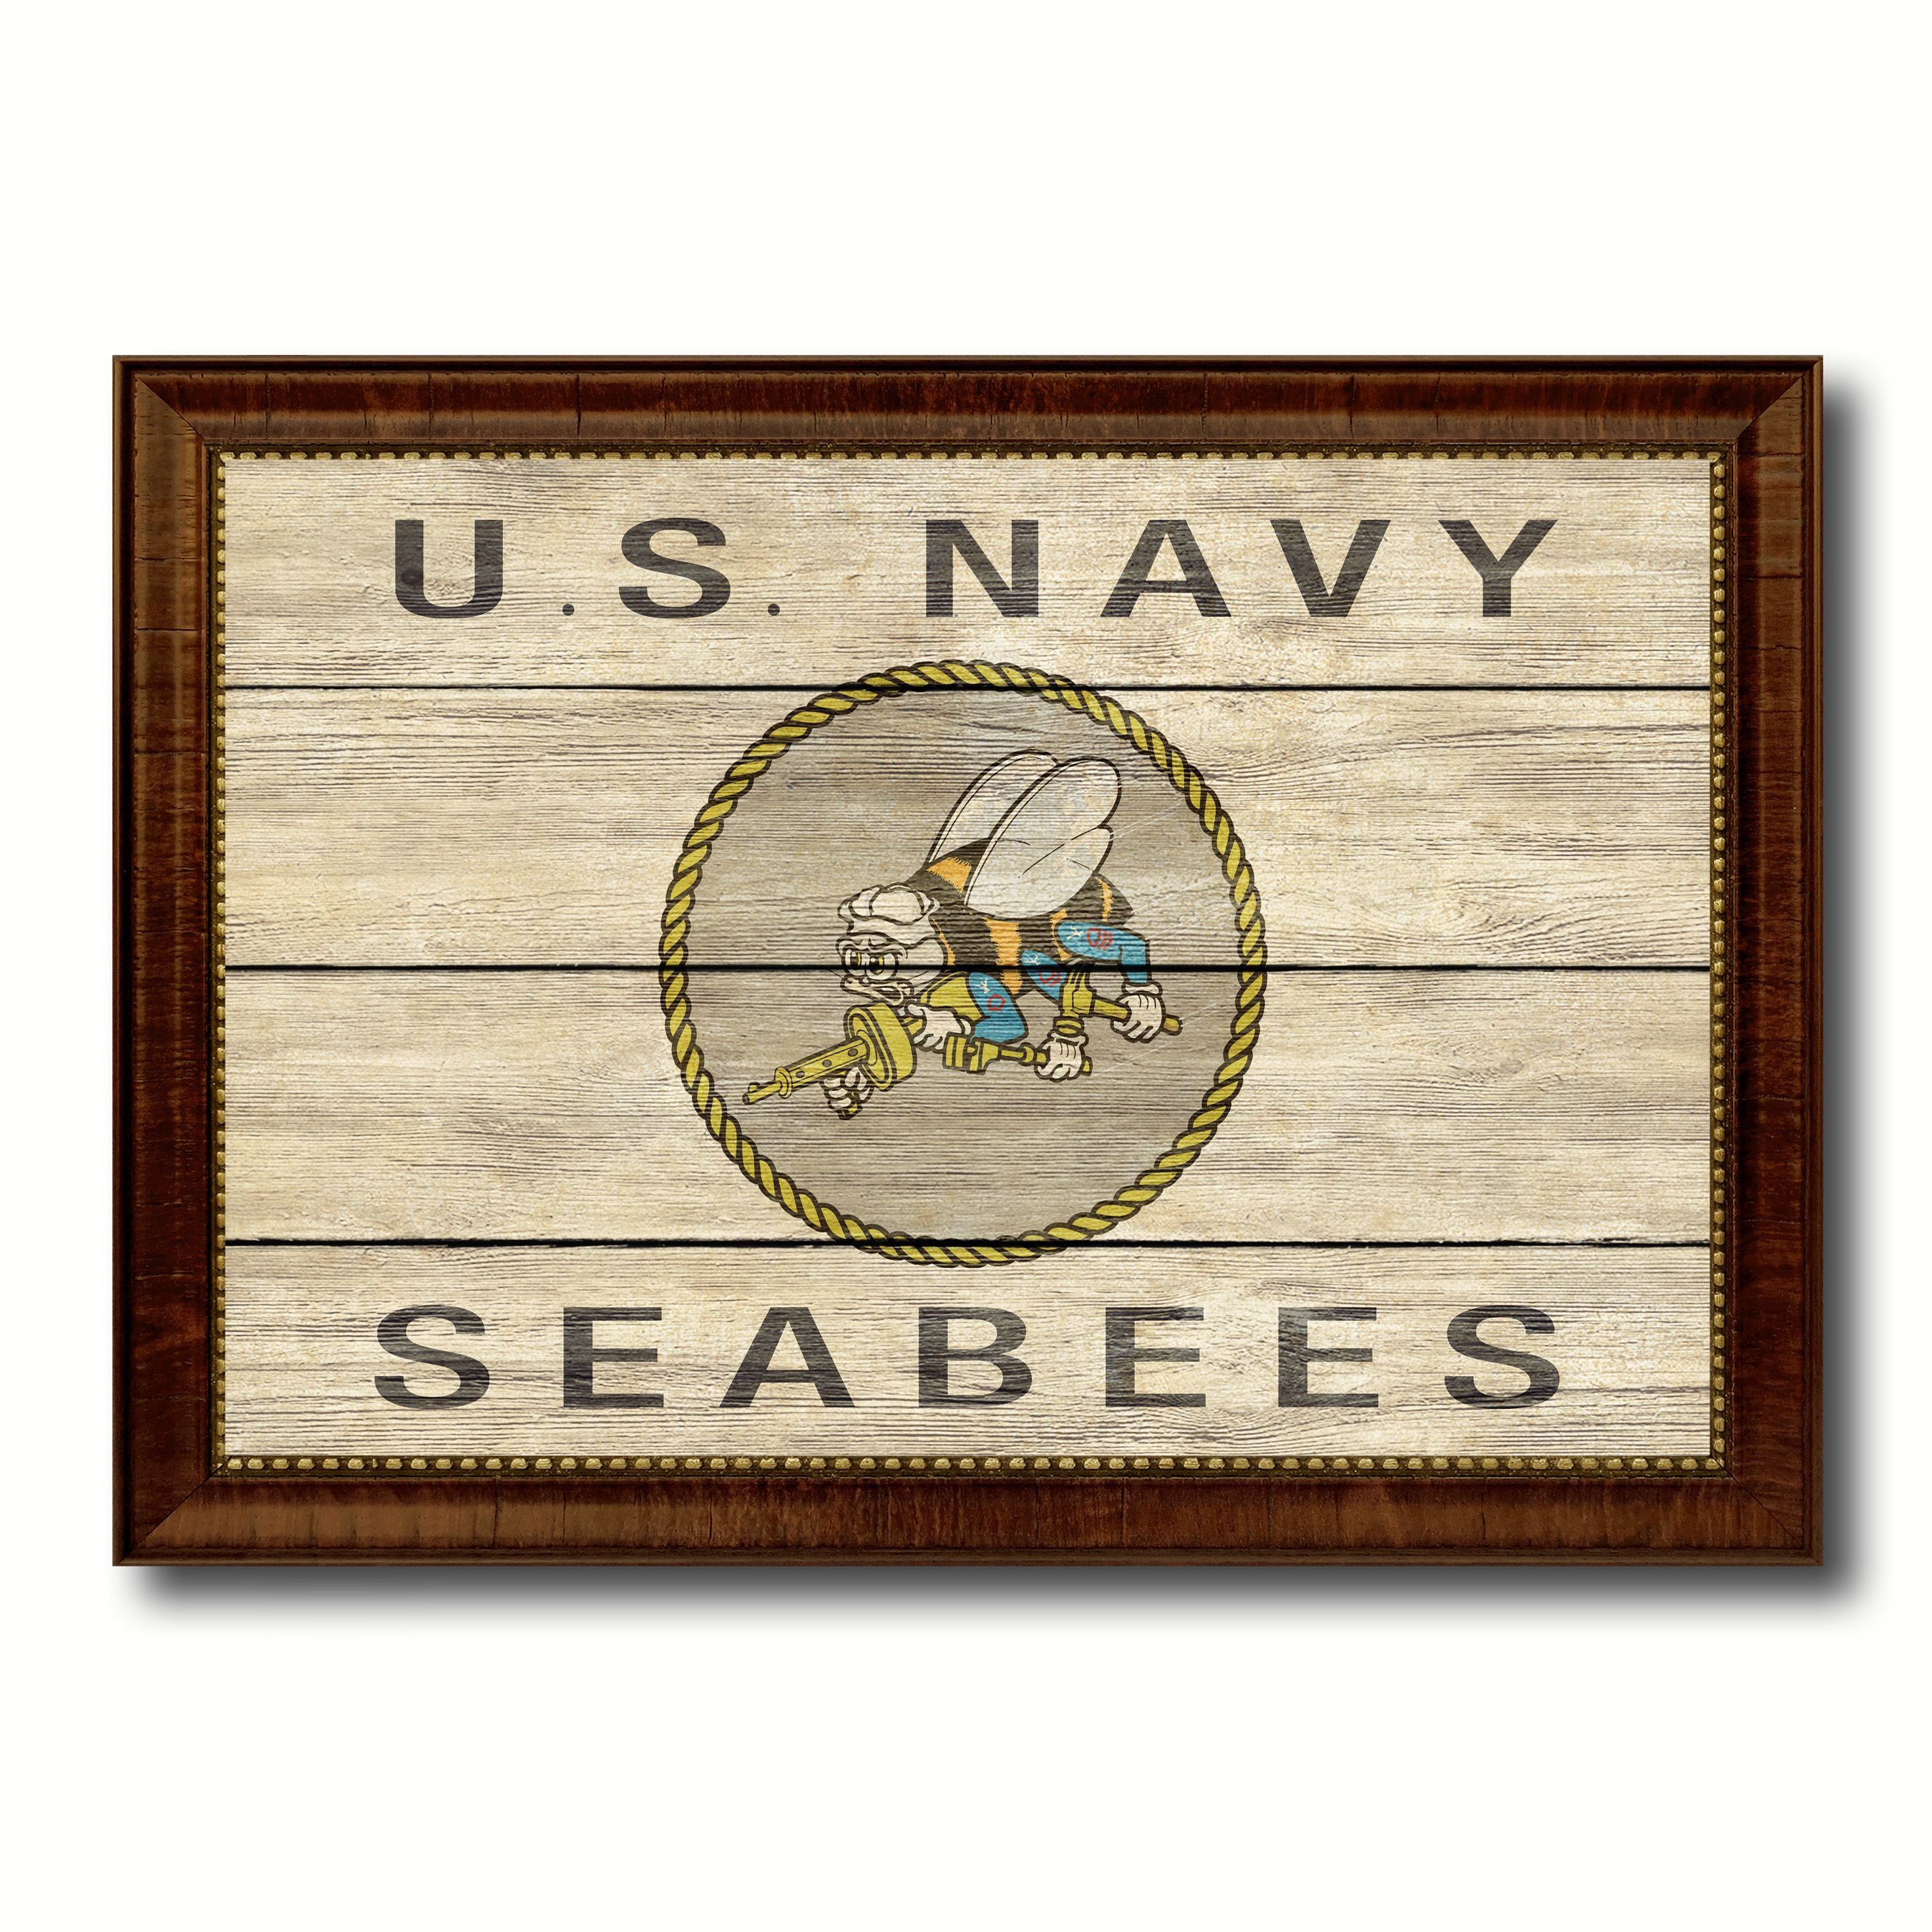 us navy seabees military flag texture canvas print with brown